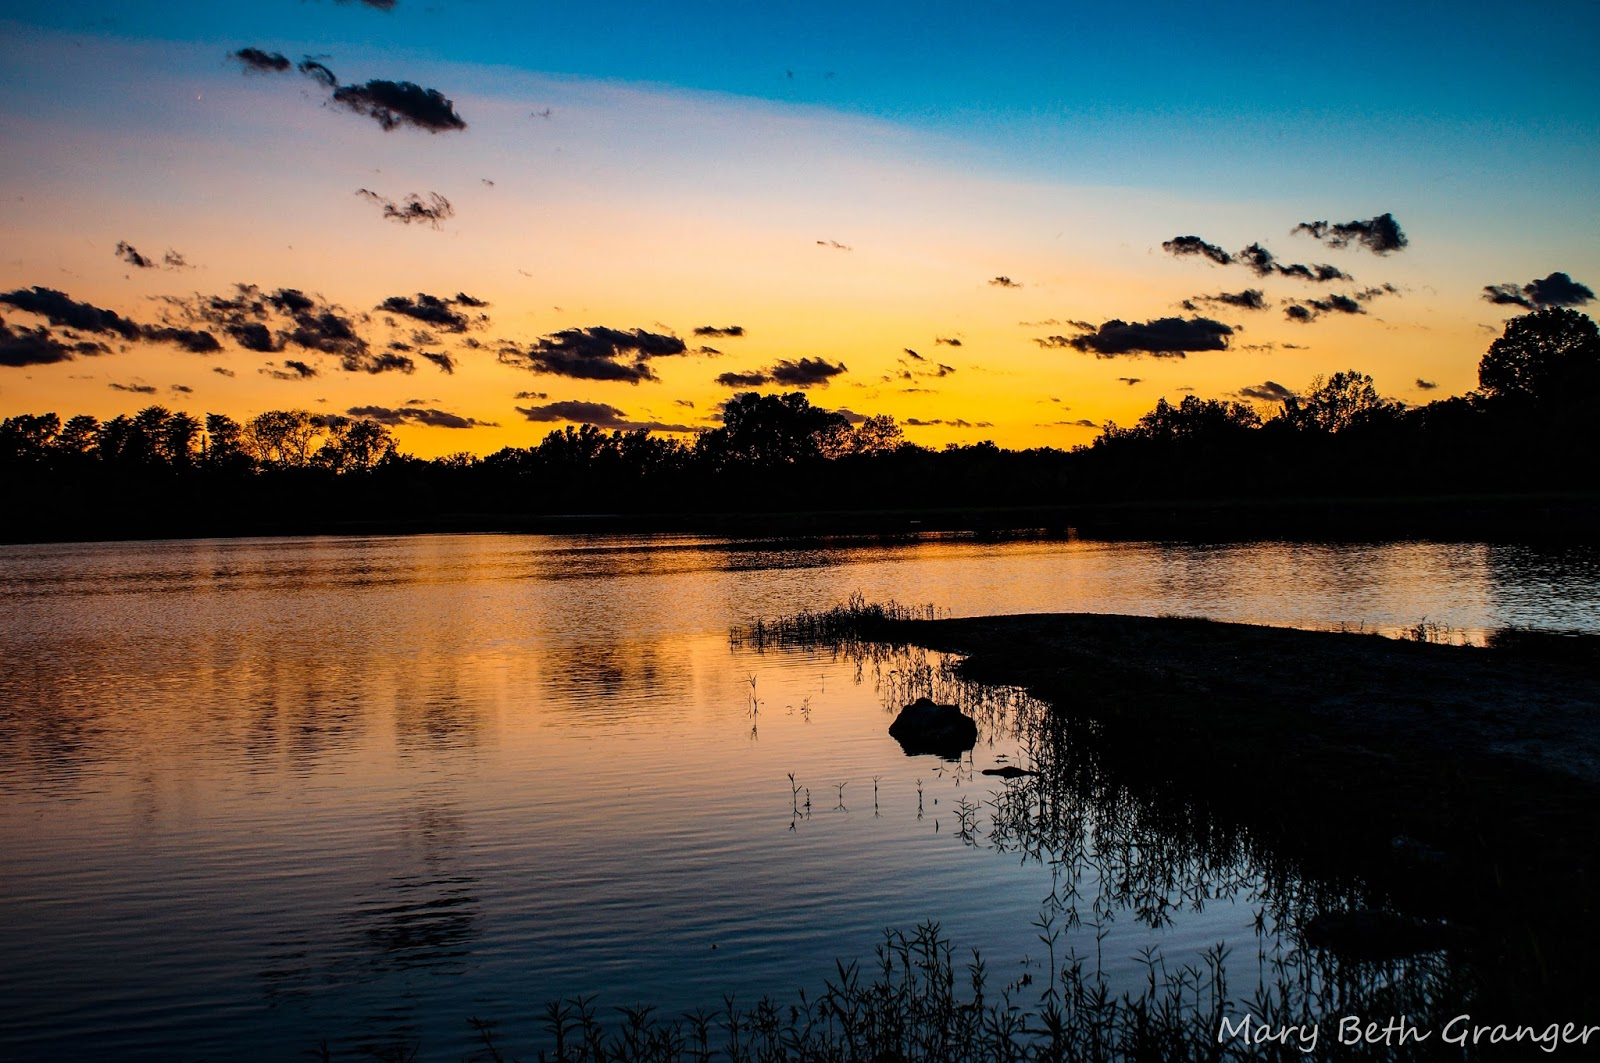 reviewing tips for photographing beautiful sunsets